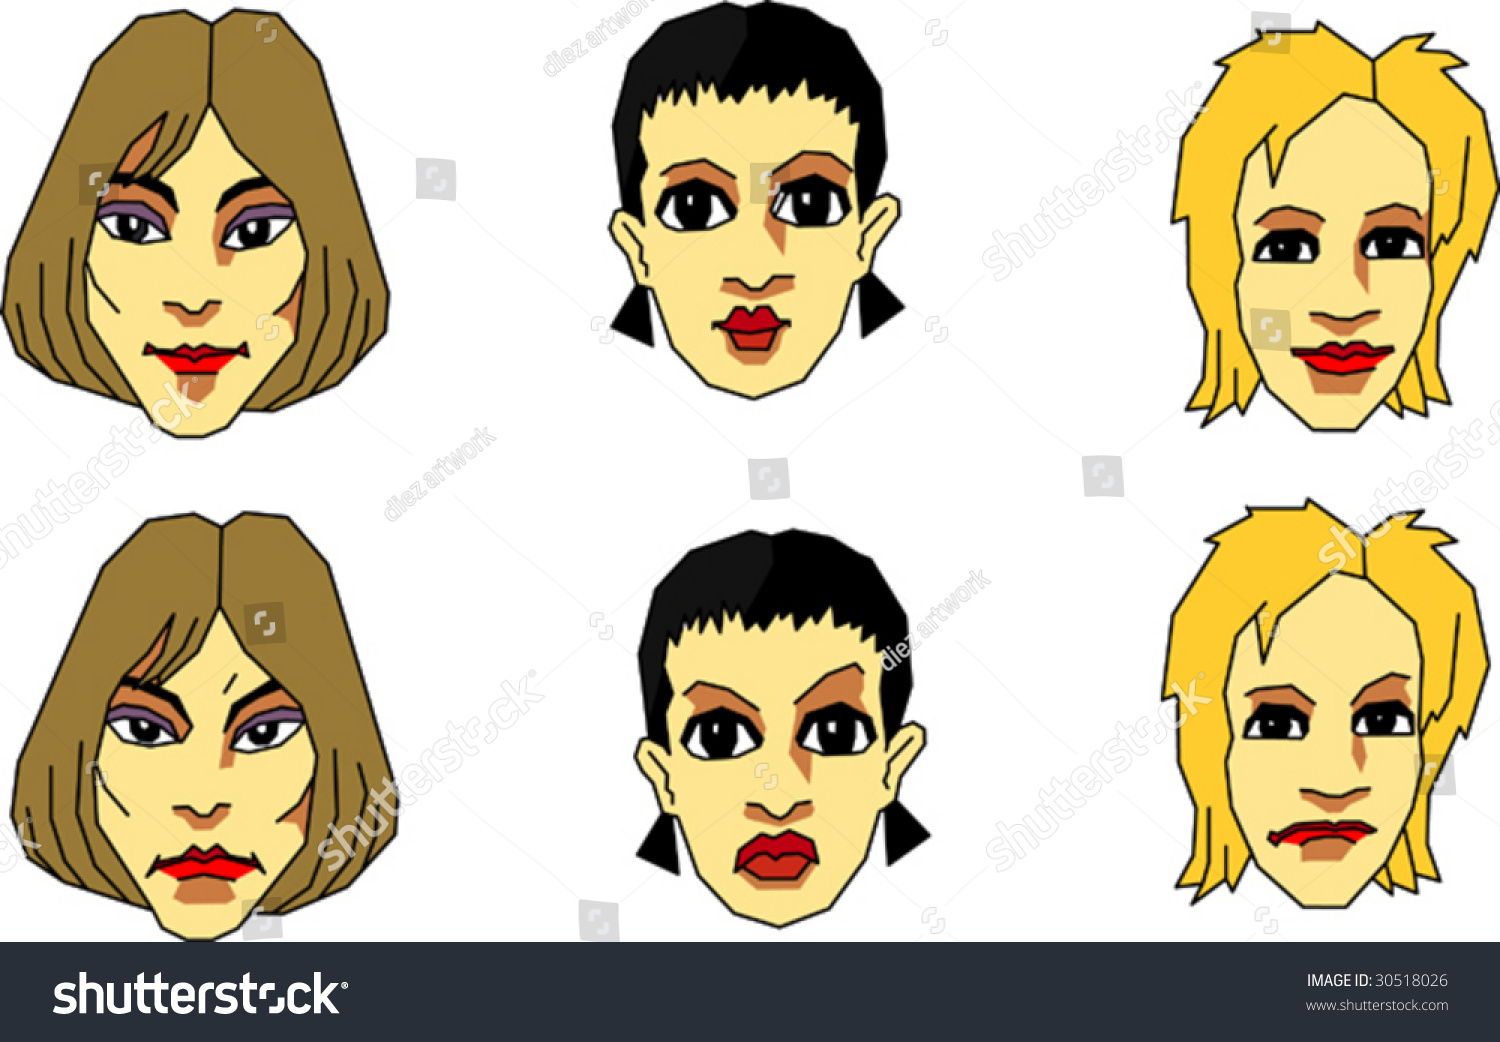 Friendly And Unfriendly Faces Of Women Stock Vector ...